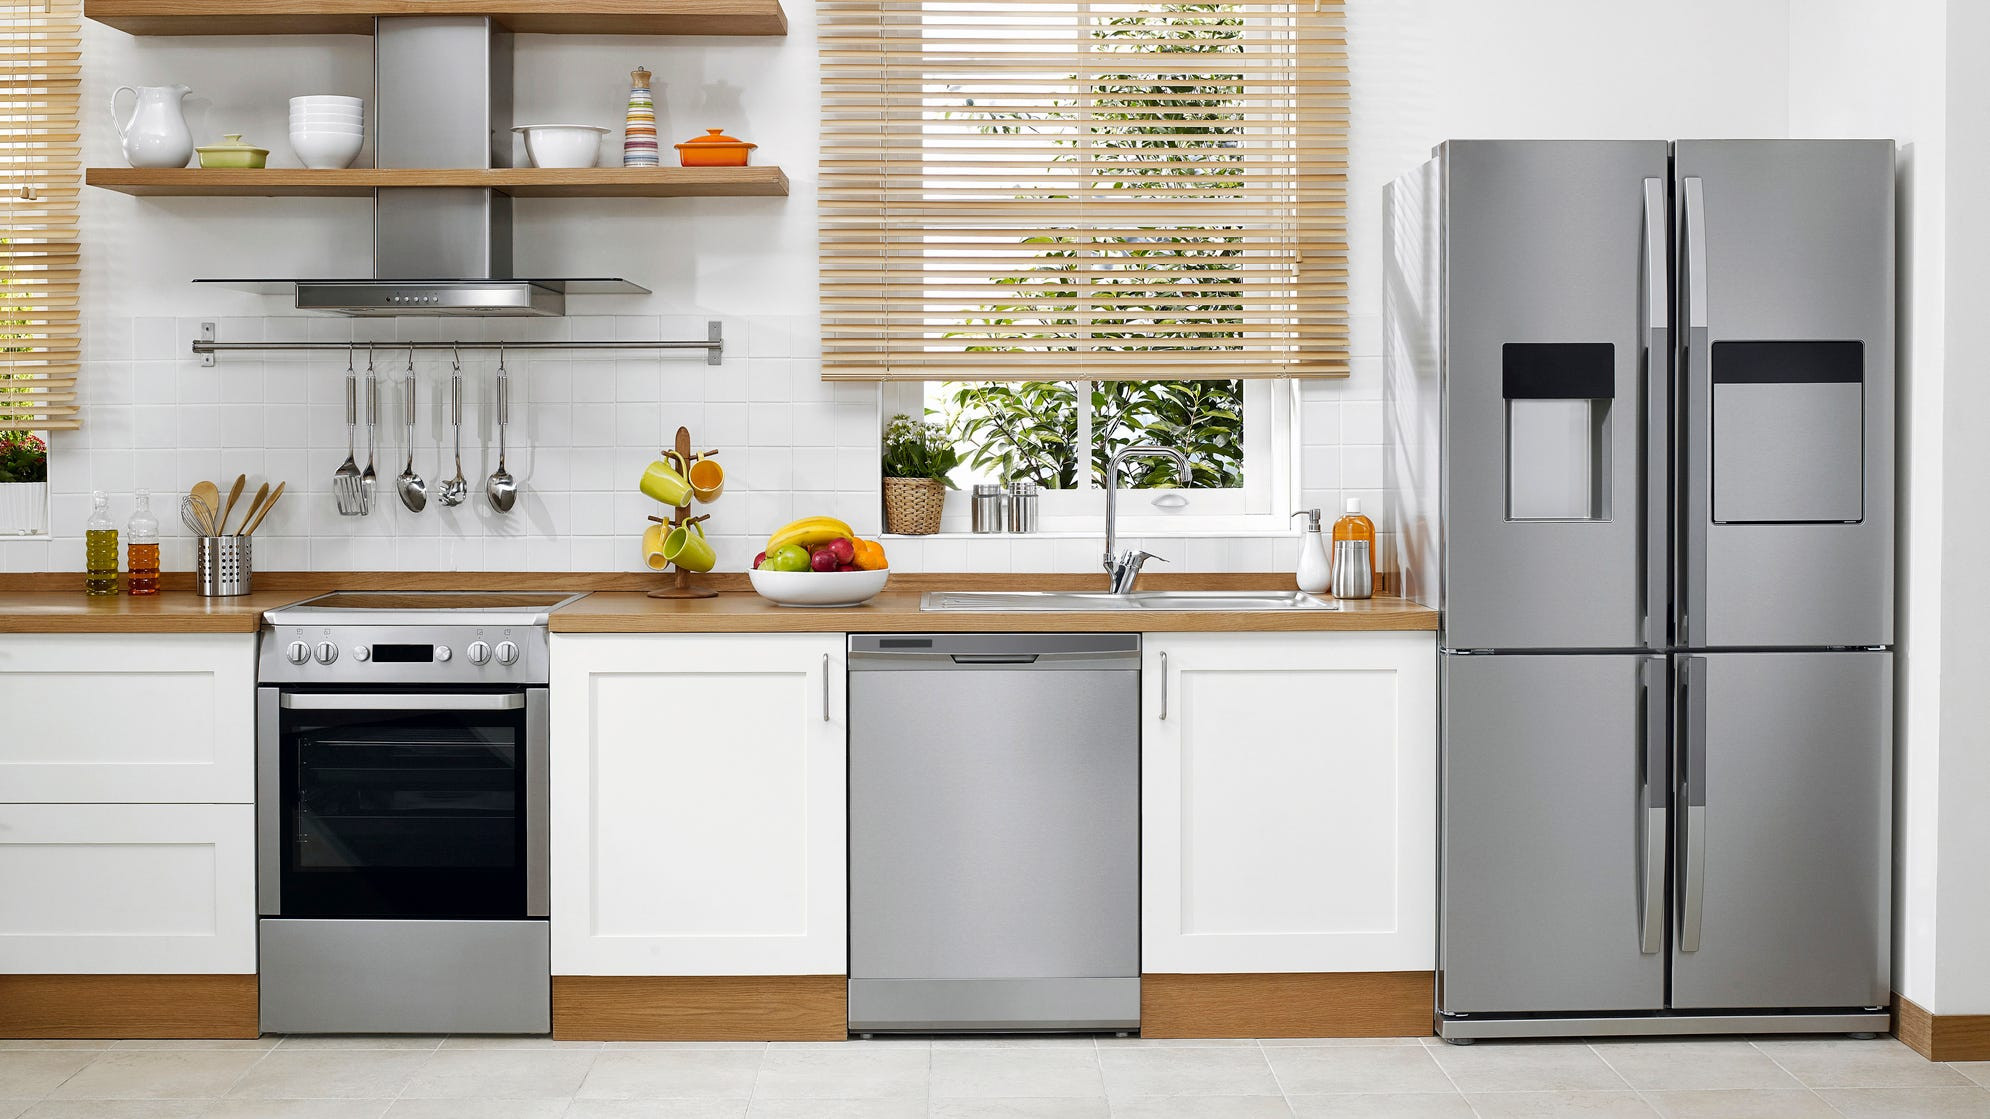 Memorial Day is the perfect time to buy new appliances